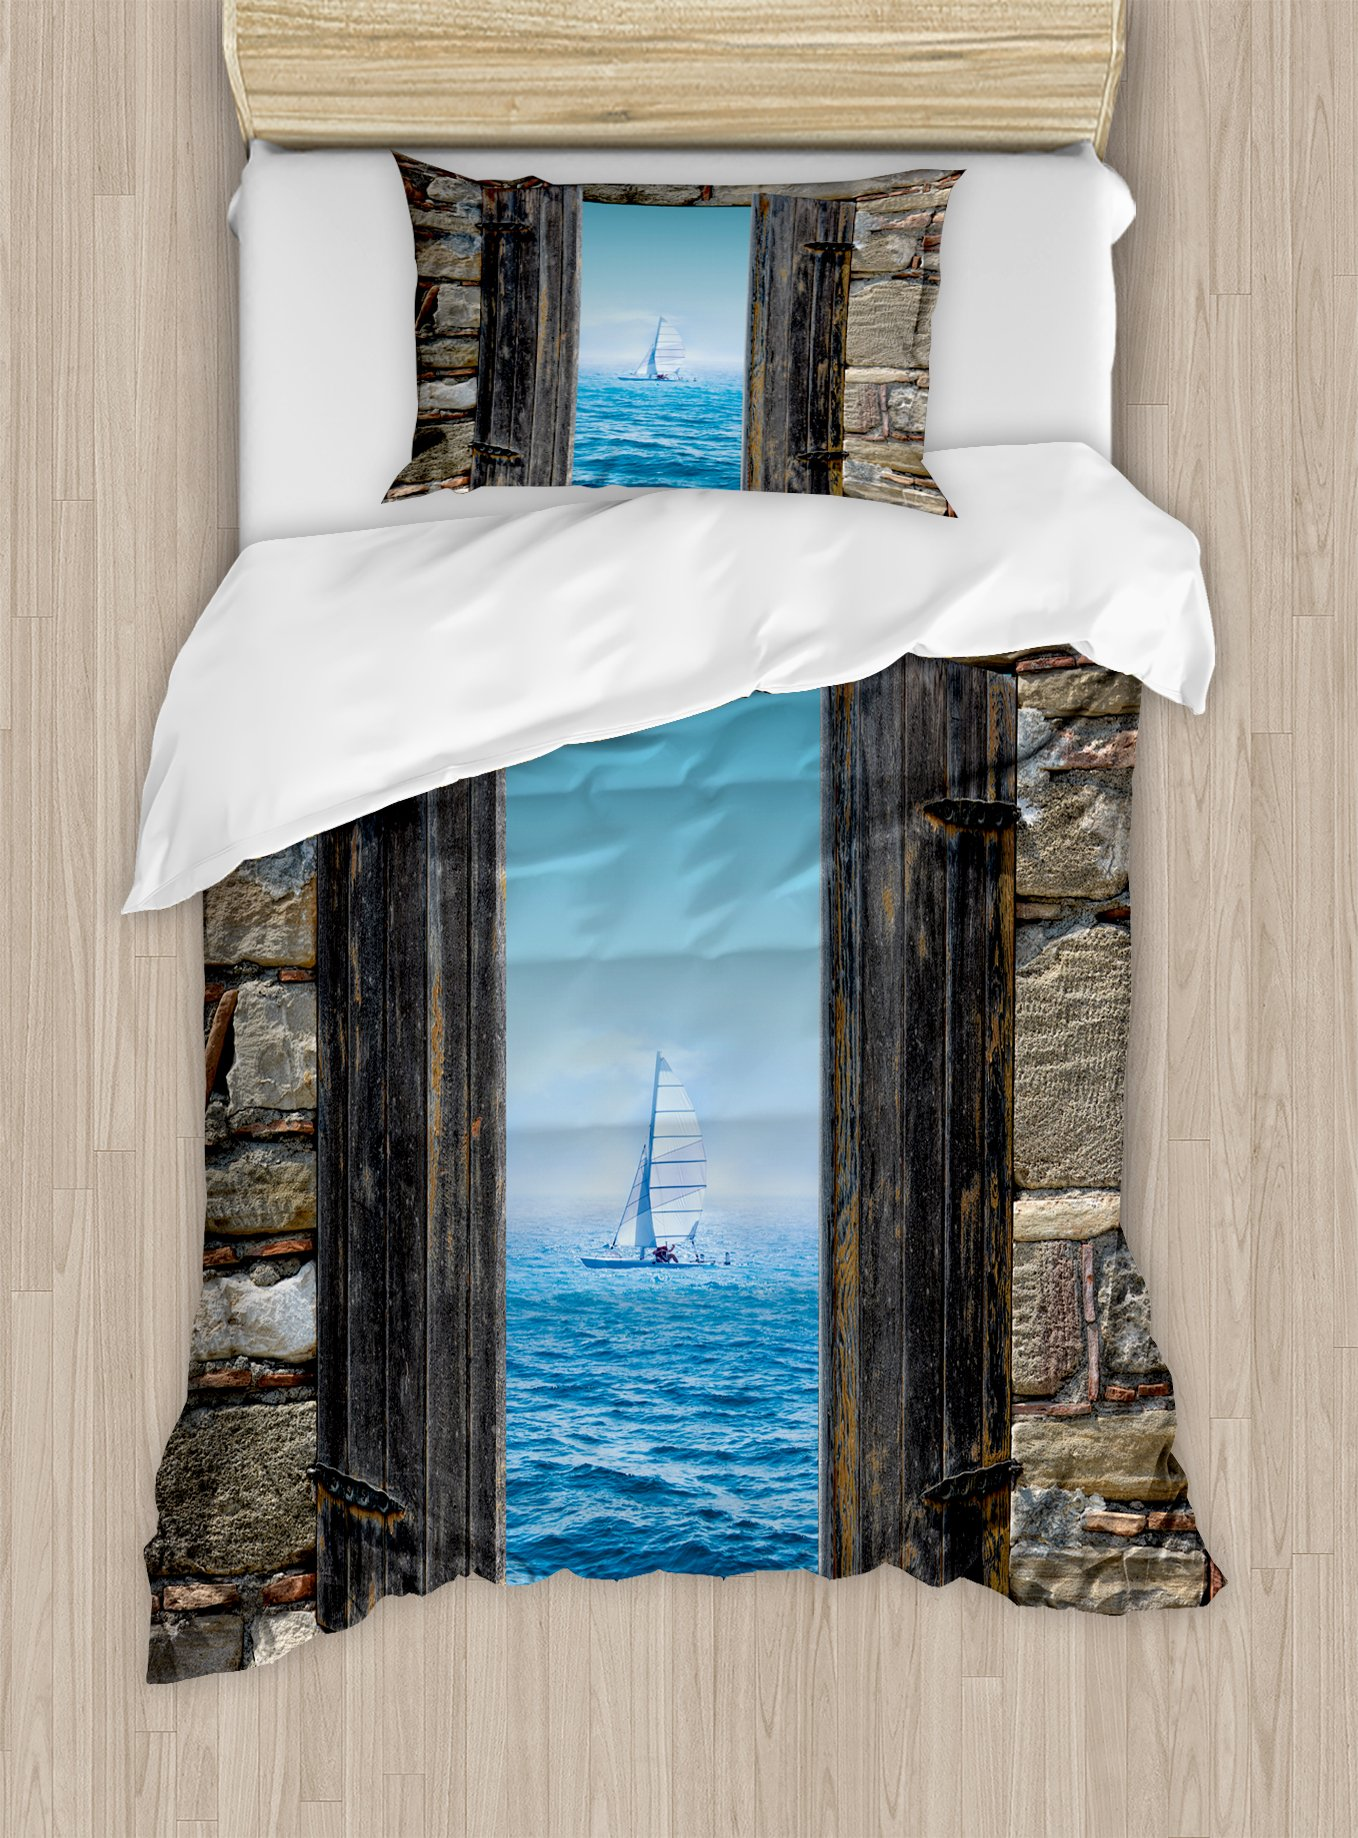 Ambesonne Nautical Duvet Cover Set Twin Size, Image of A Sailing Boat from Stone Window Narrow Perspective Idyllic Mediterranean, Decorative 2 Piece Bedding Set with 1 Pillow Sham, Grey Blue